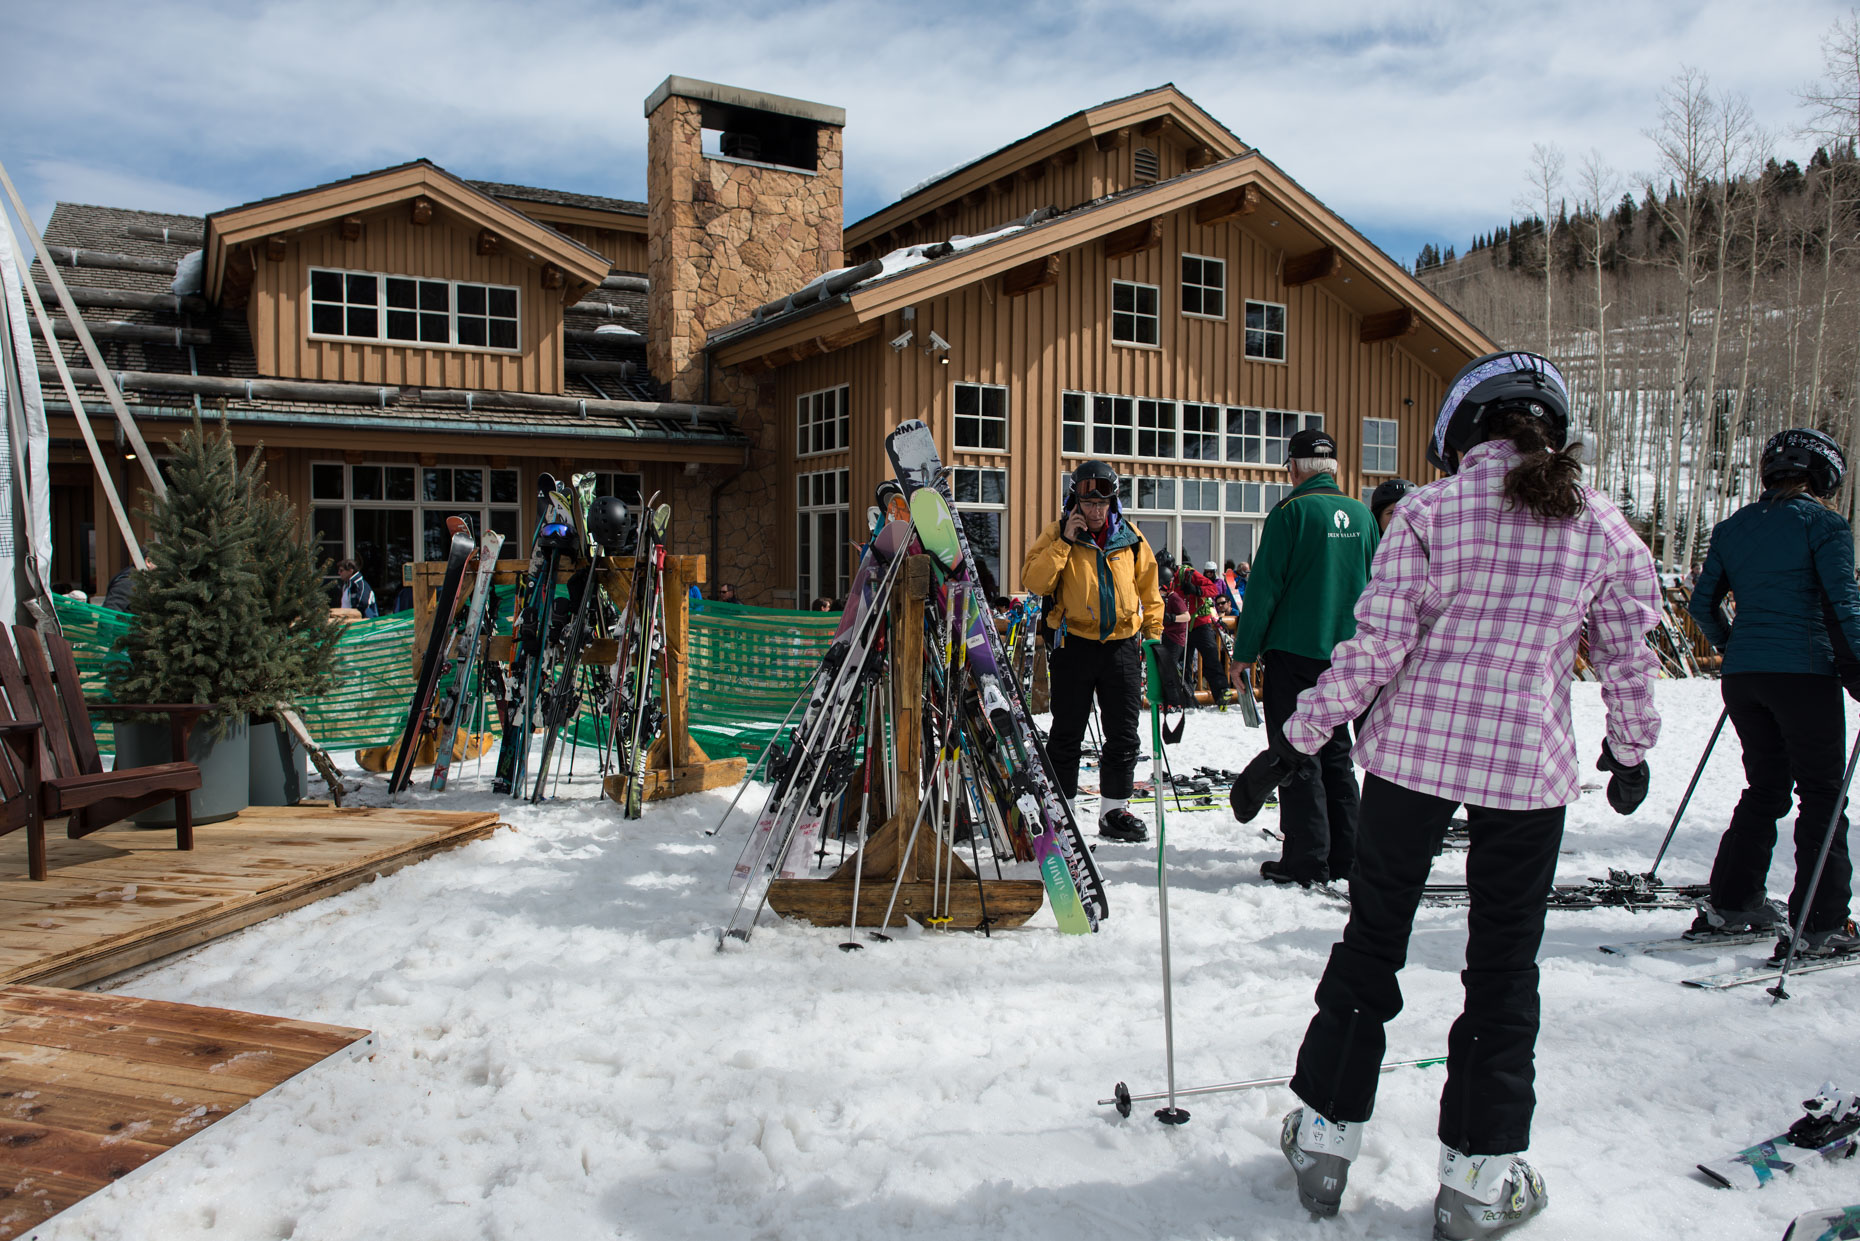 2015-03-15-AMEX-Deer-Valley-0140